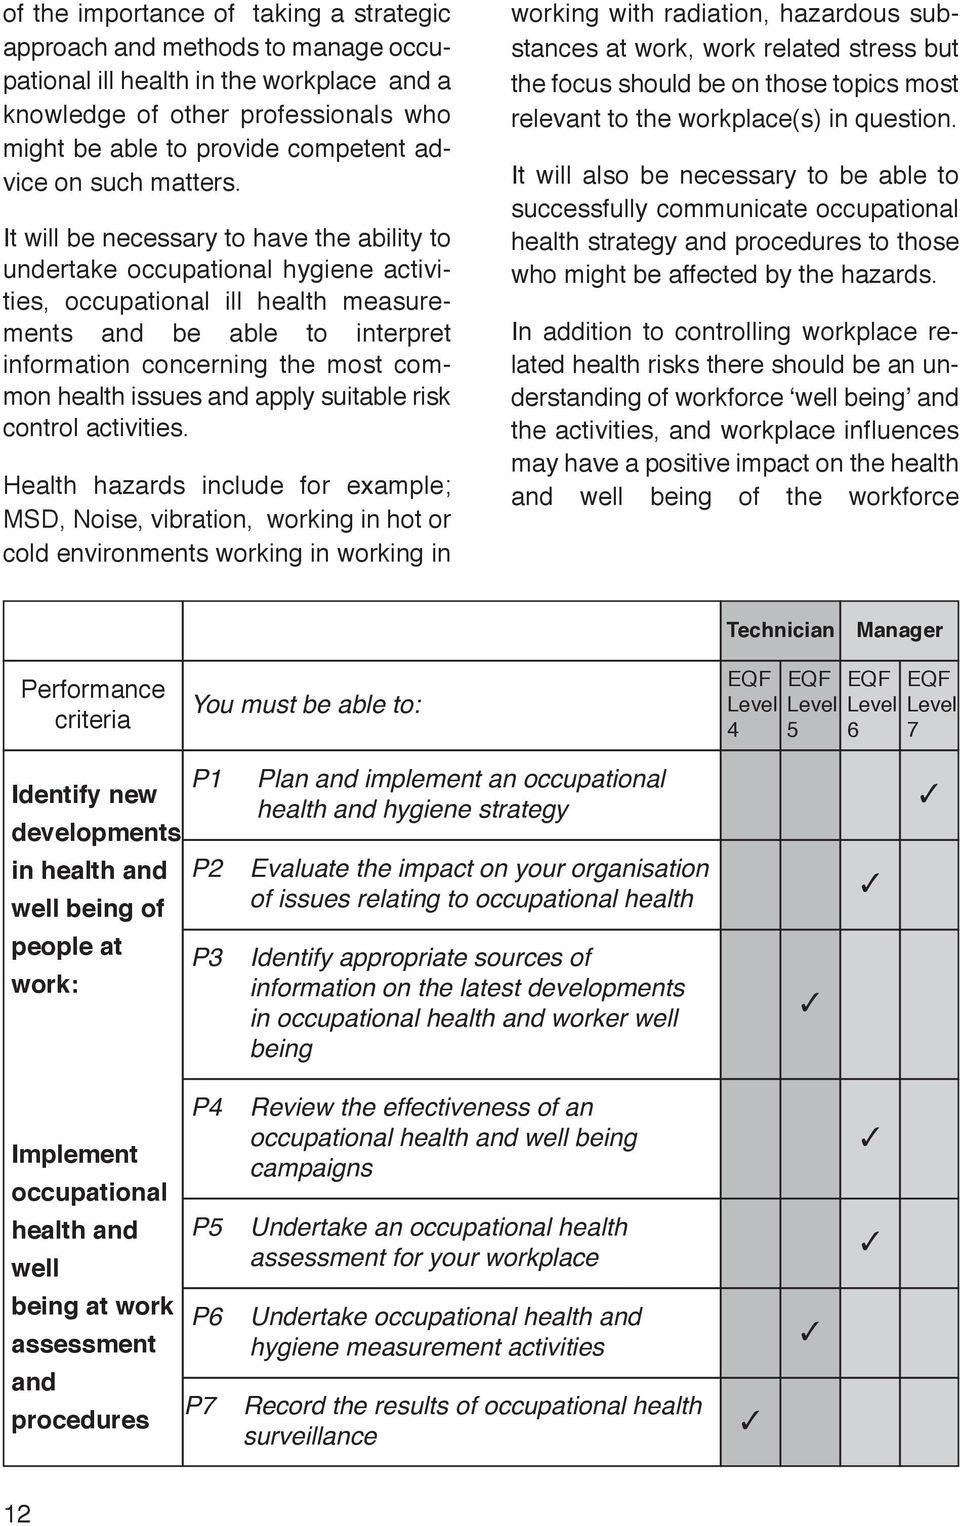 It will be necessary to have the ability to undertake occupational hygiene activities, occupational ill health measurements and be able to interpret information concerning the most common health